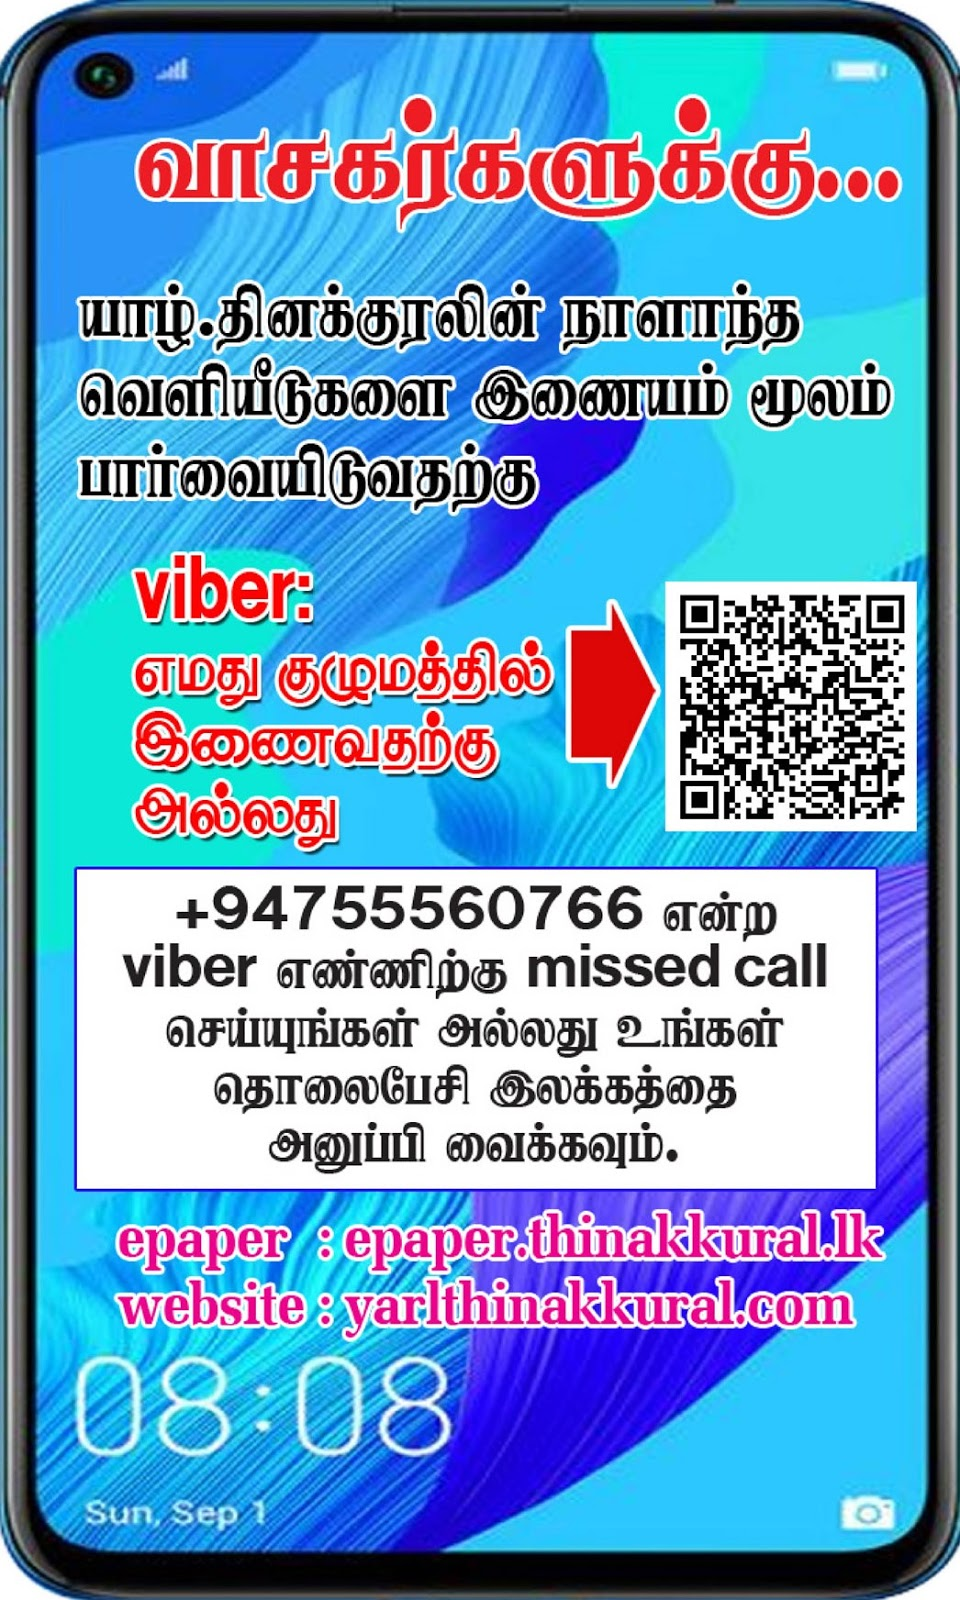 இன்றைய பத்திரிகை